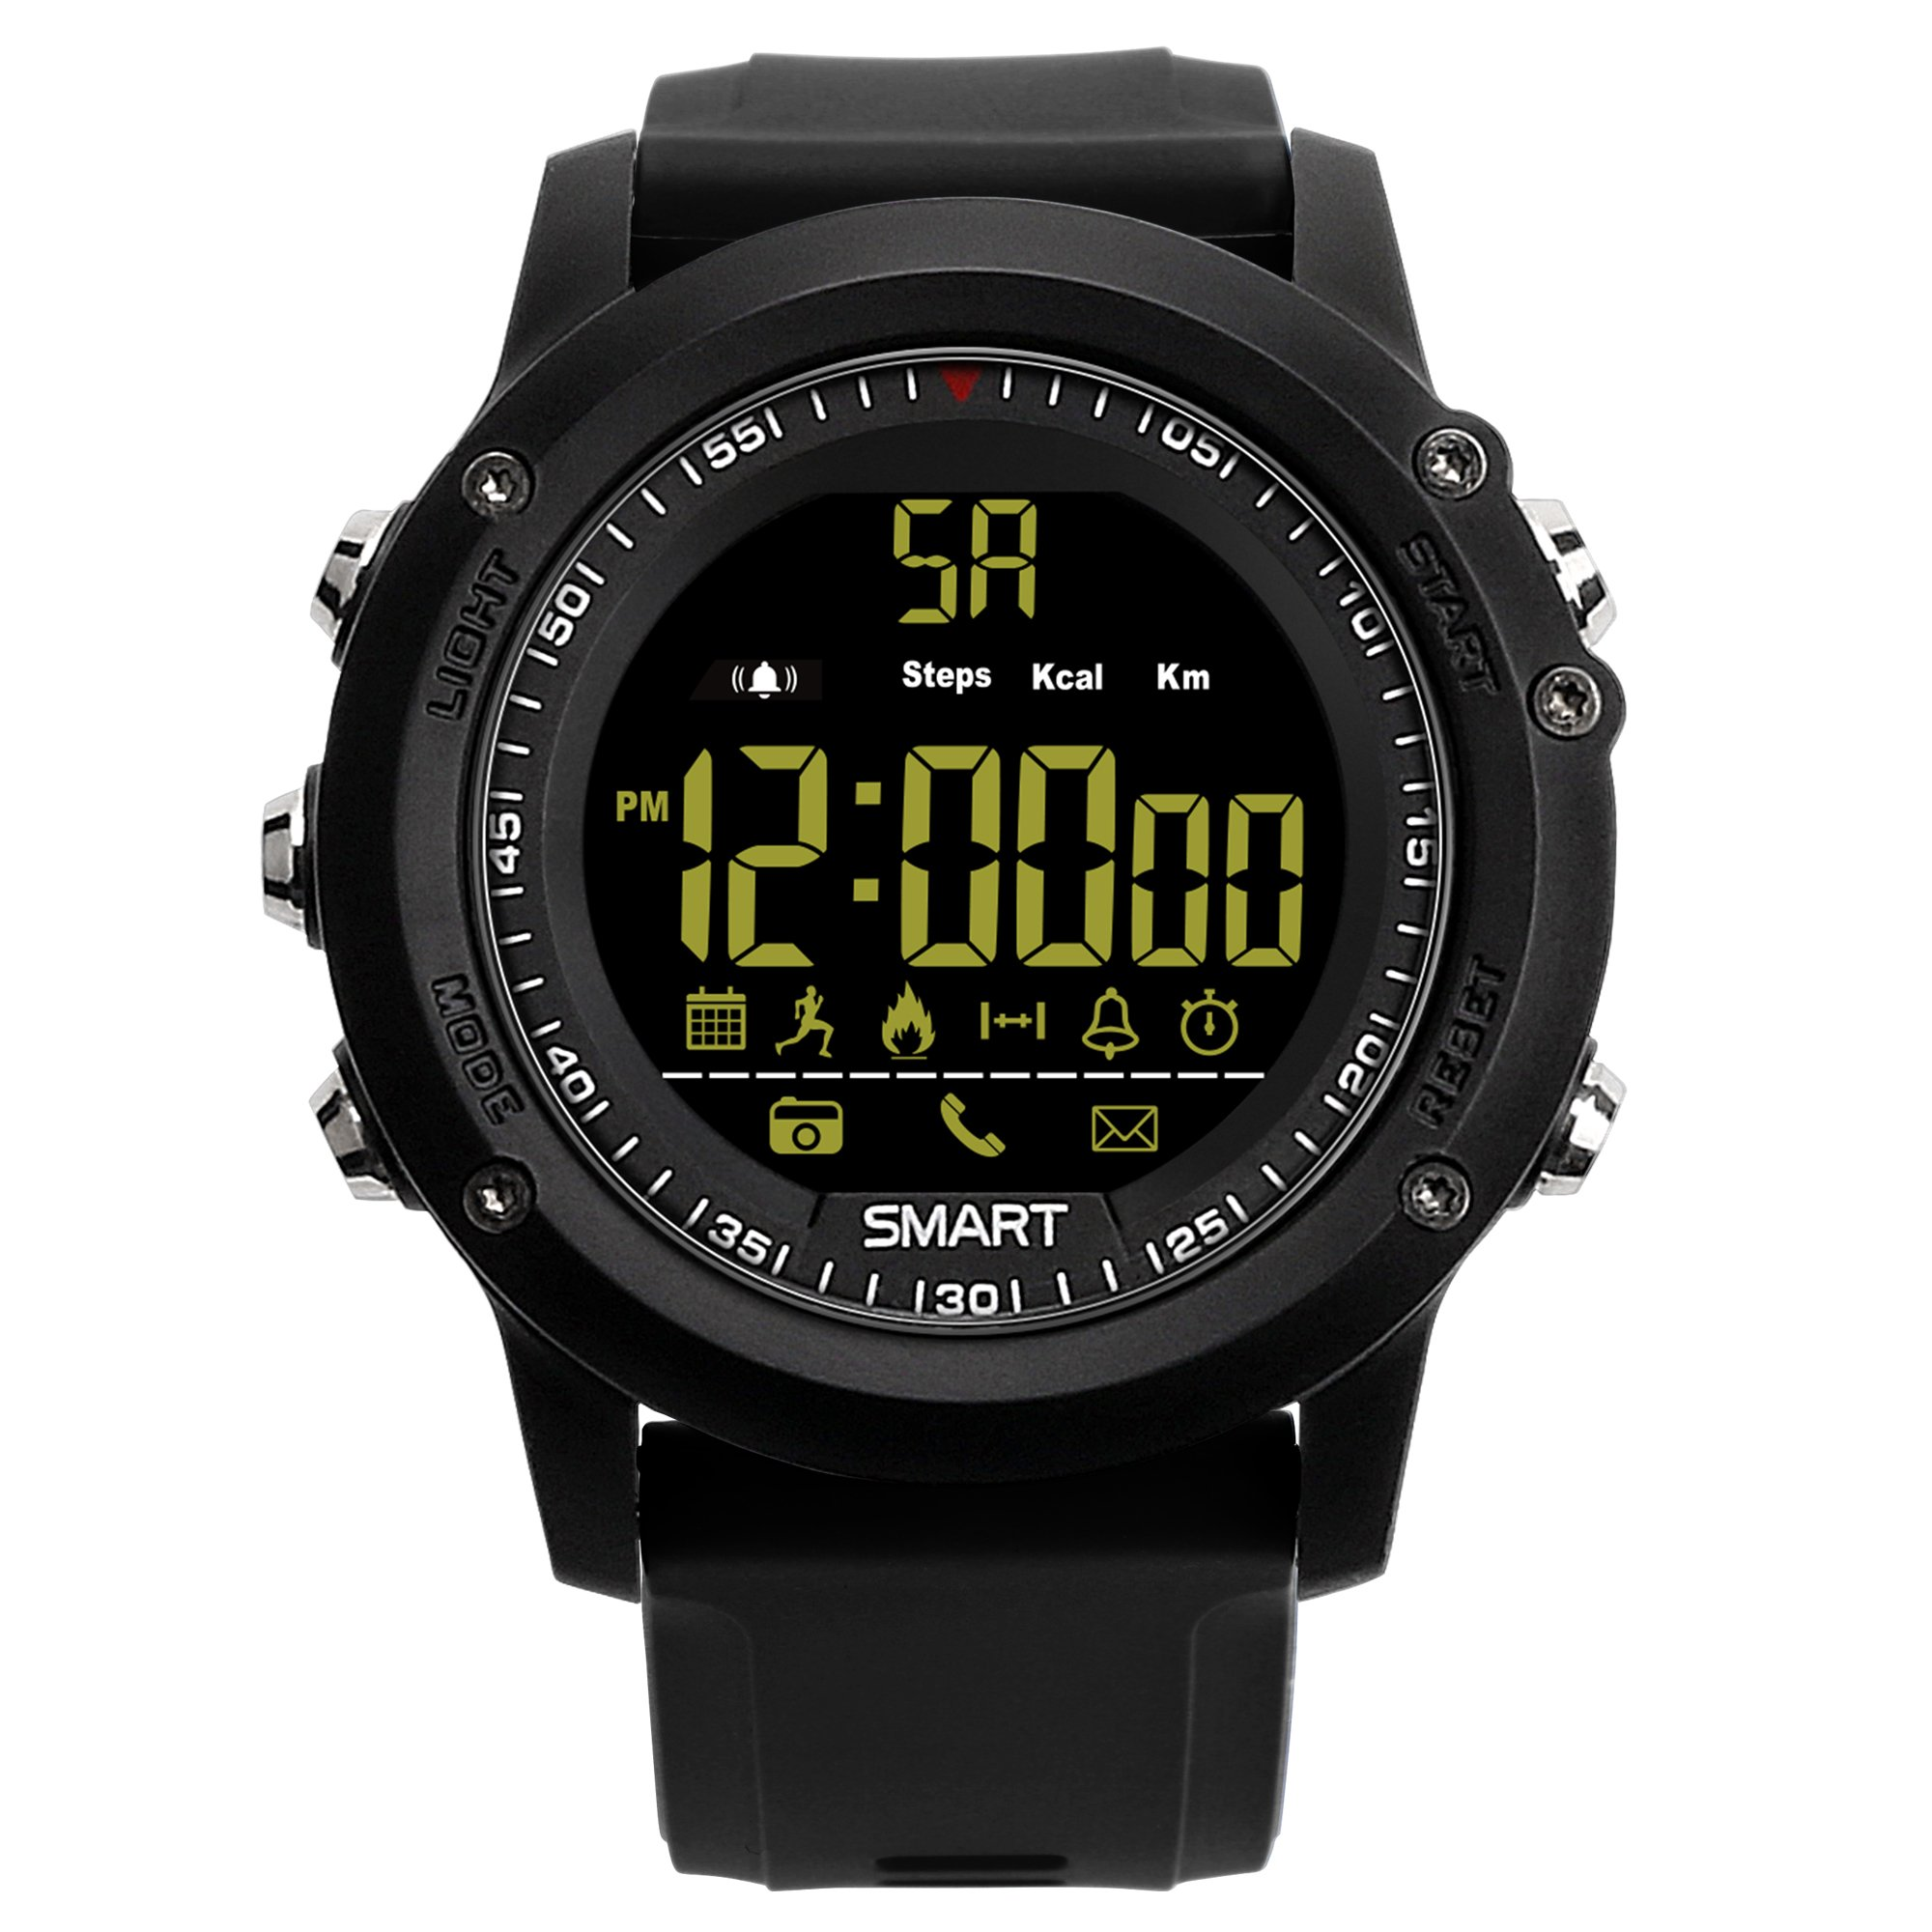 Smart Sports Watch Model EX26 Pedometer Fitness IP67 Waterproof and Shock Resistant Remote Camera Incoming Call or Message Alert for iPhone,Samsung, LG,ZTE,Huawei